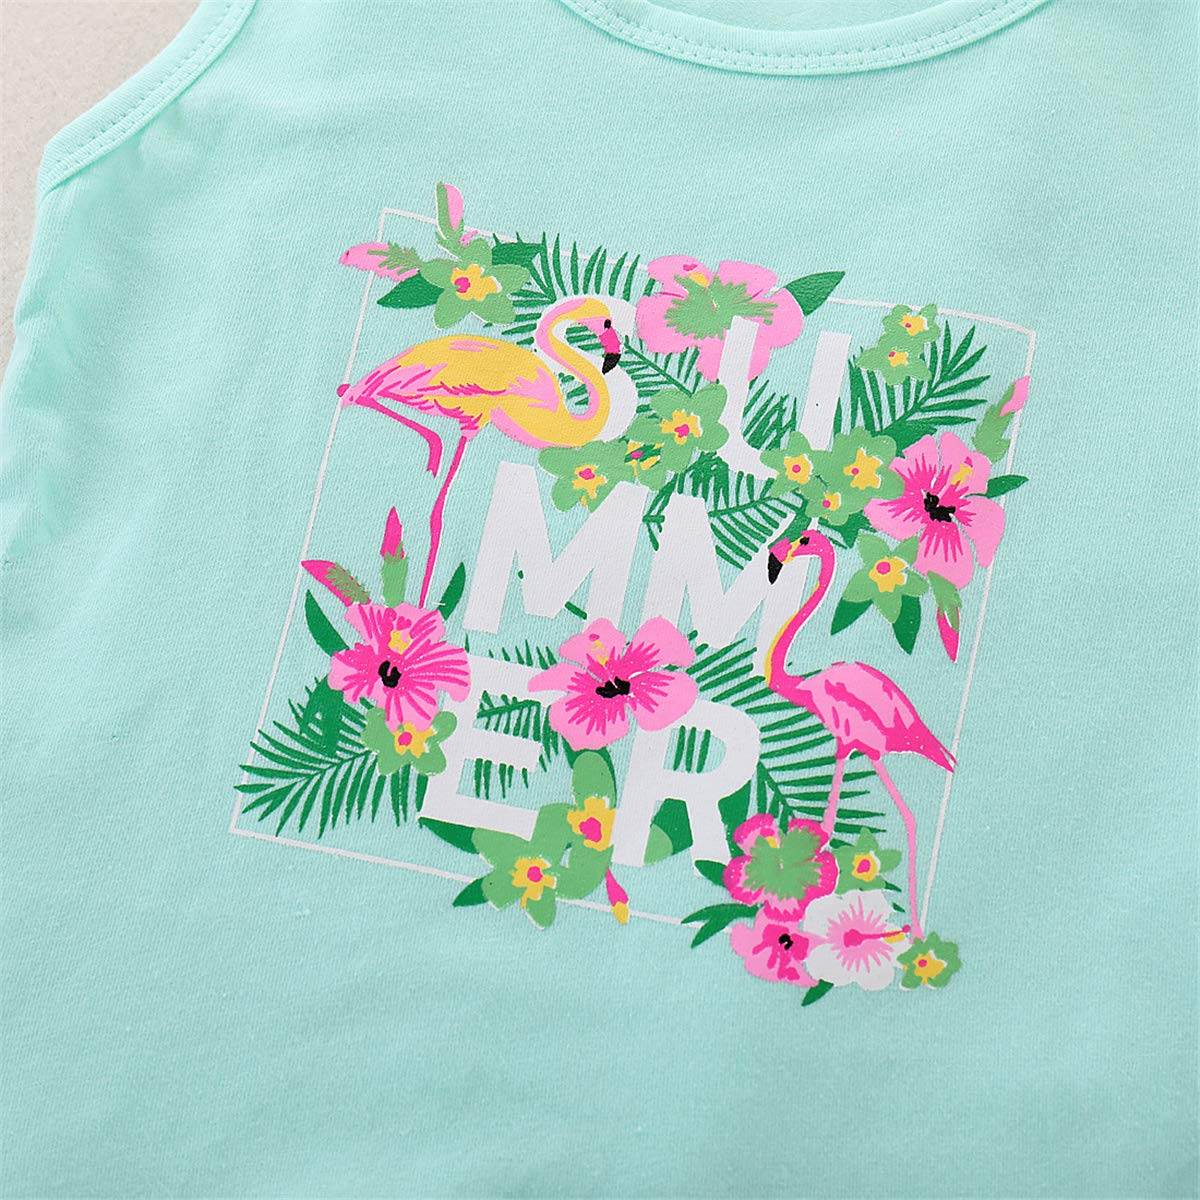 Sleeveless Shirt Shorts SANGTREE Baby Girls Cute Outfit